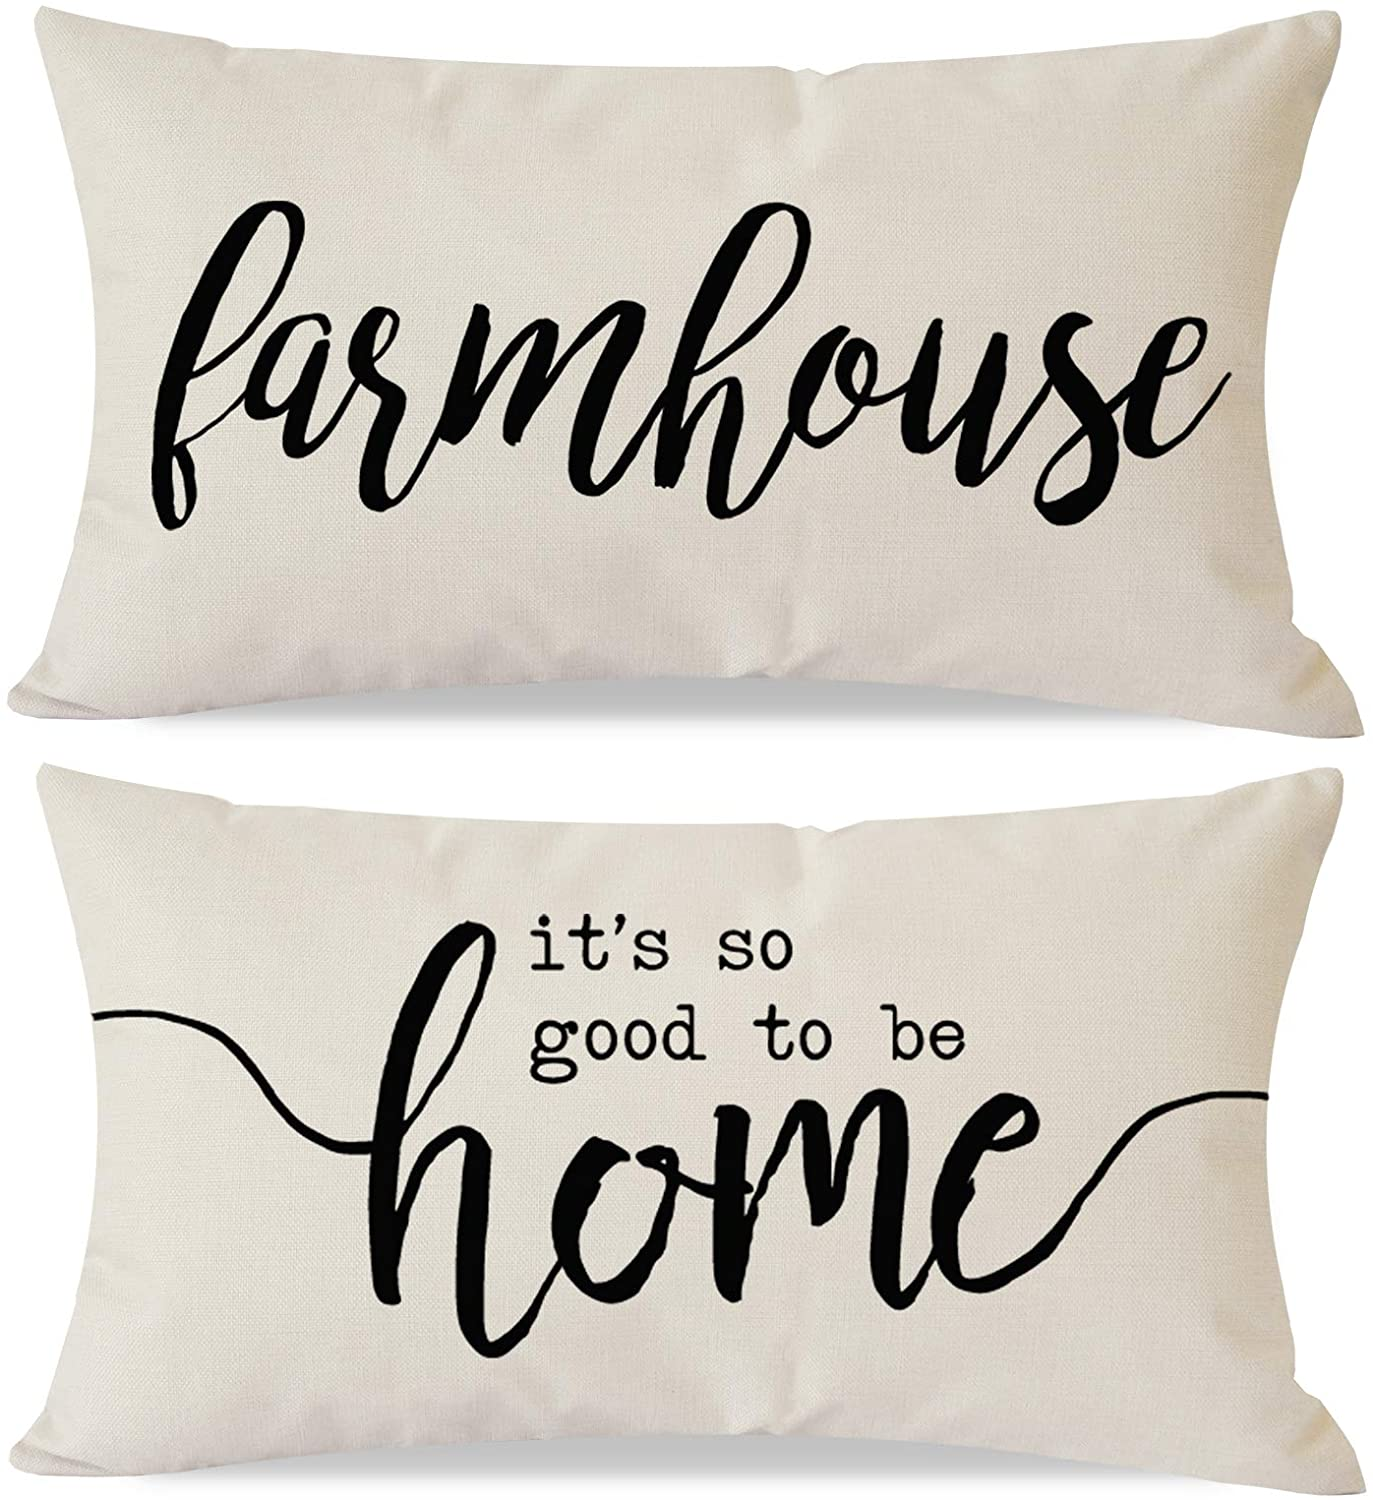 PANDICORN Set of 2 Farmhouse Pillow Covers 12x20 with Words Farmhouse It's So Good to Be Home for Room Décor, Lumbar Throw Pillow Cases for Guest Room Outdoor Porch Chair